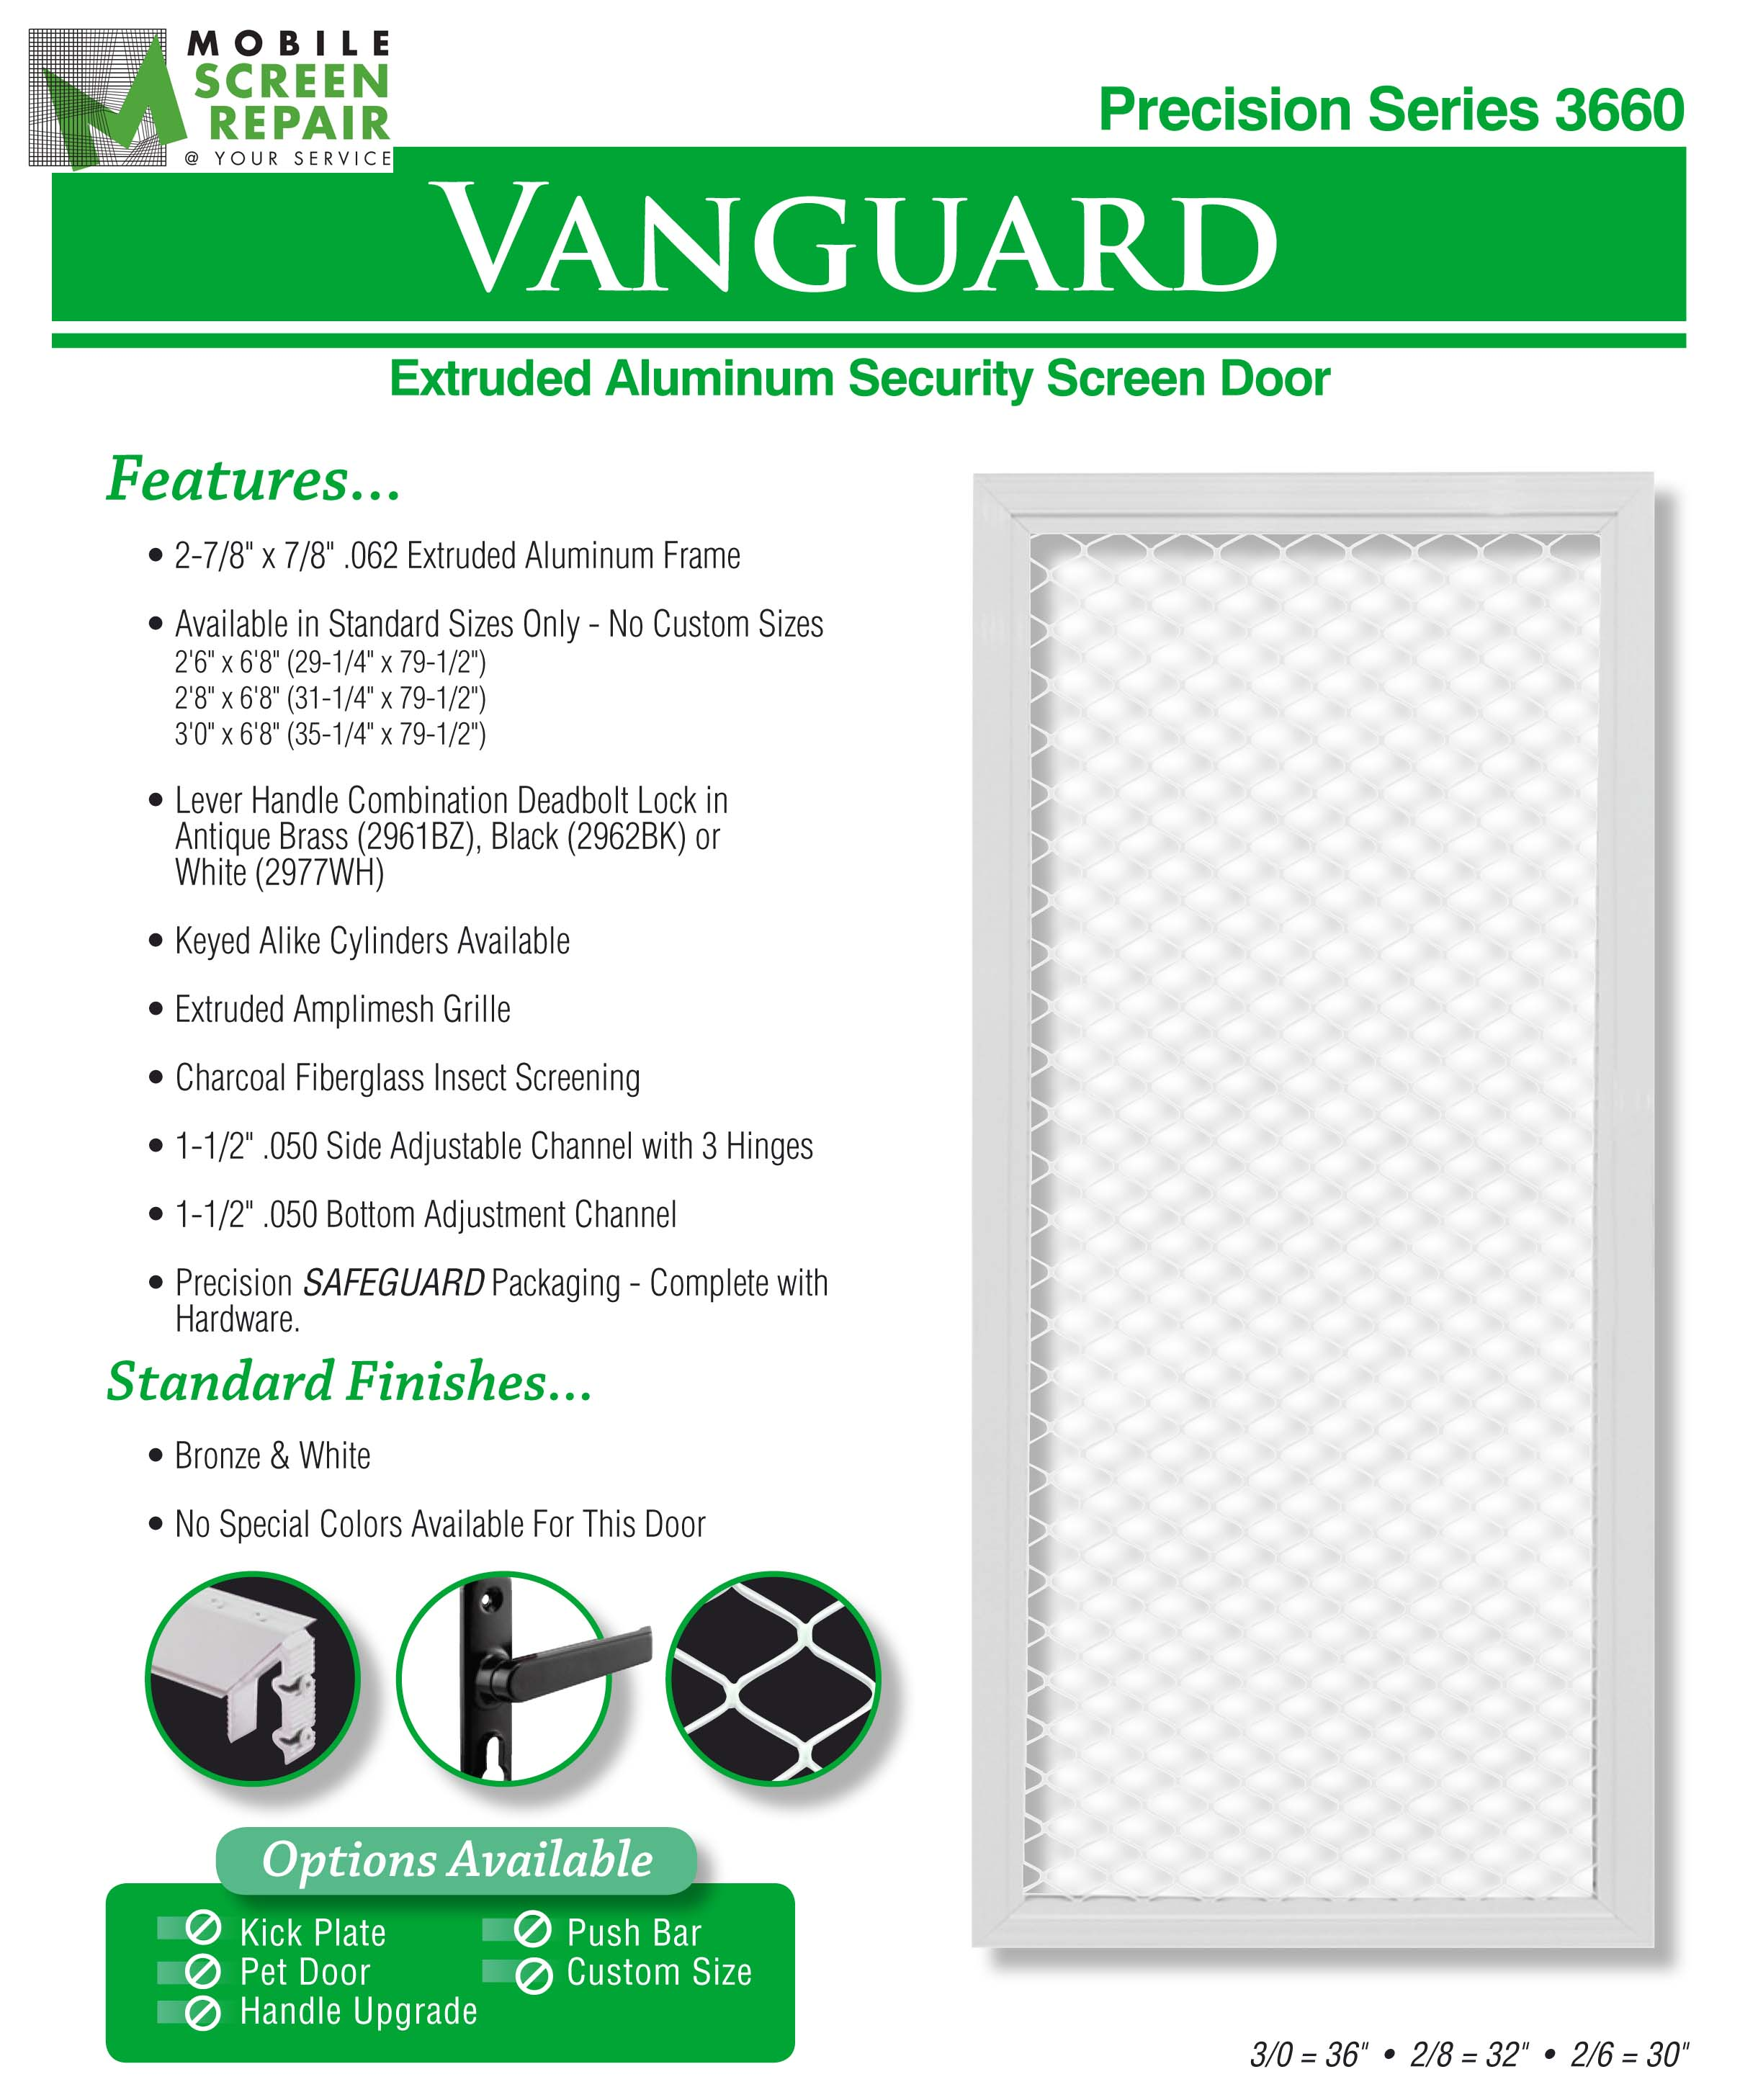 Aluminum Security Screen Door aluminum screen doors | mobile screen repair